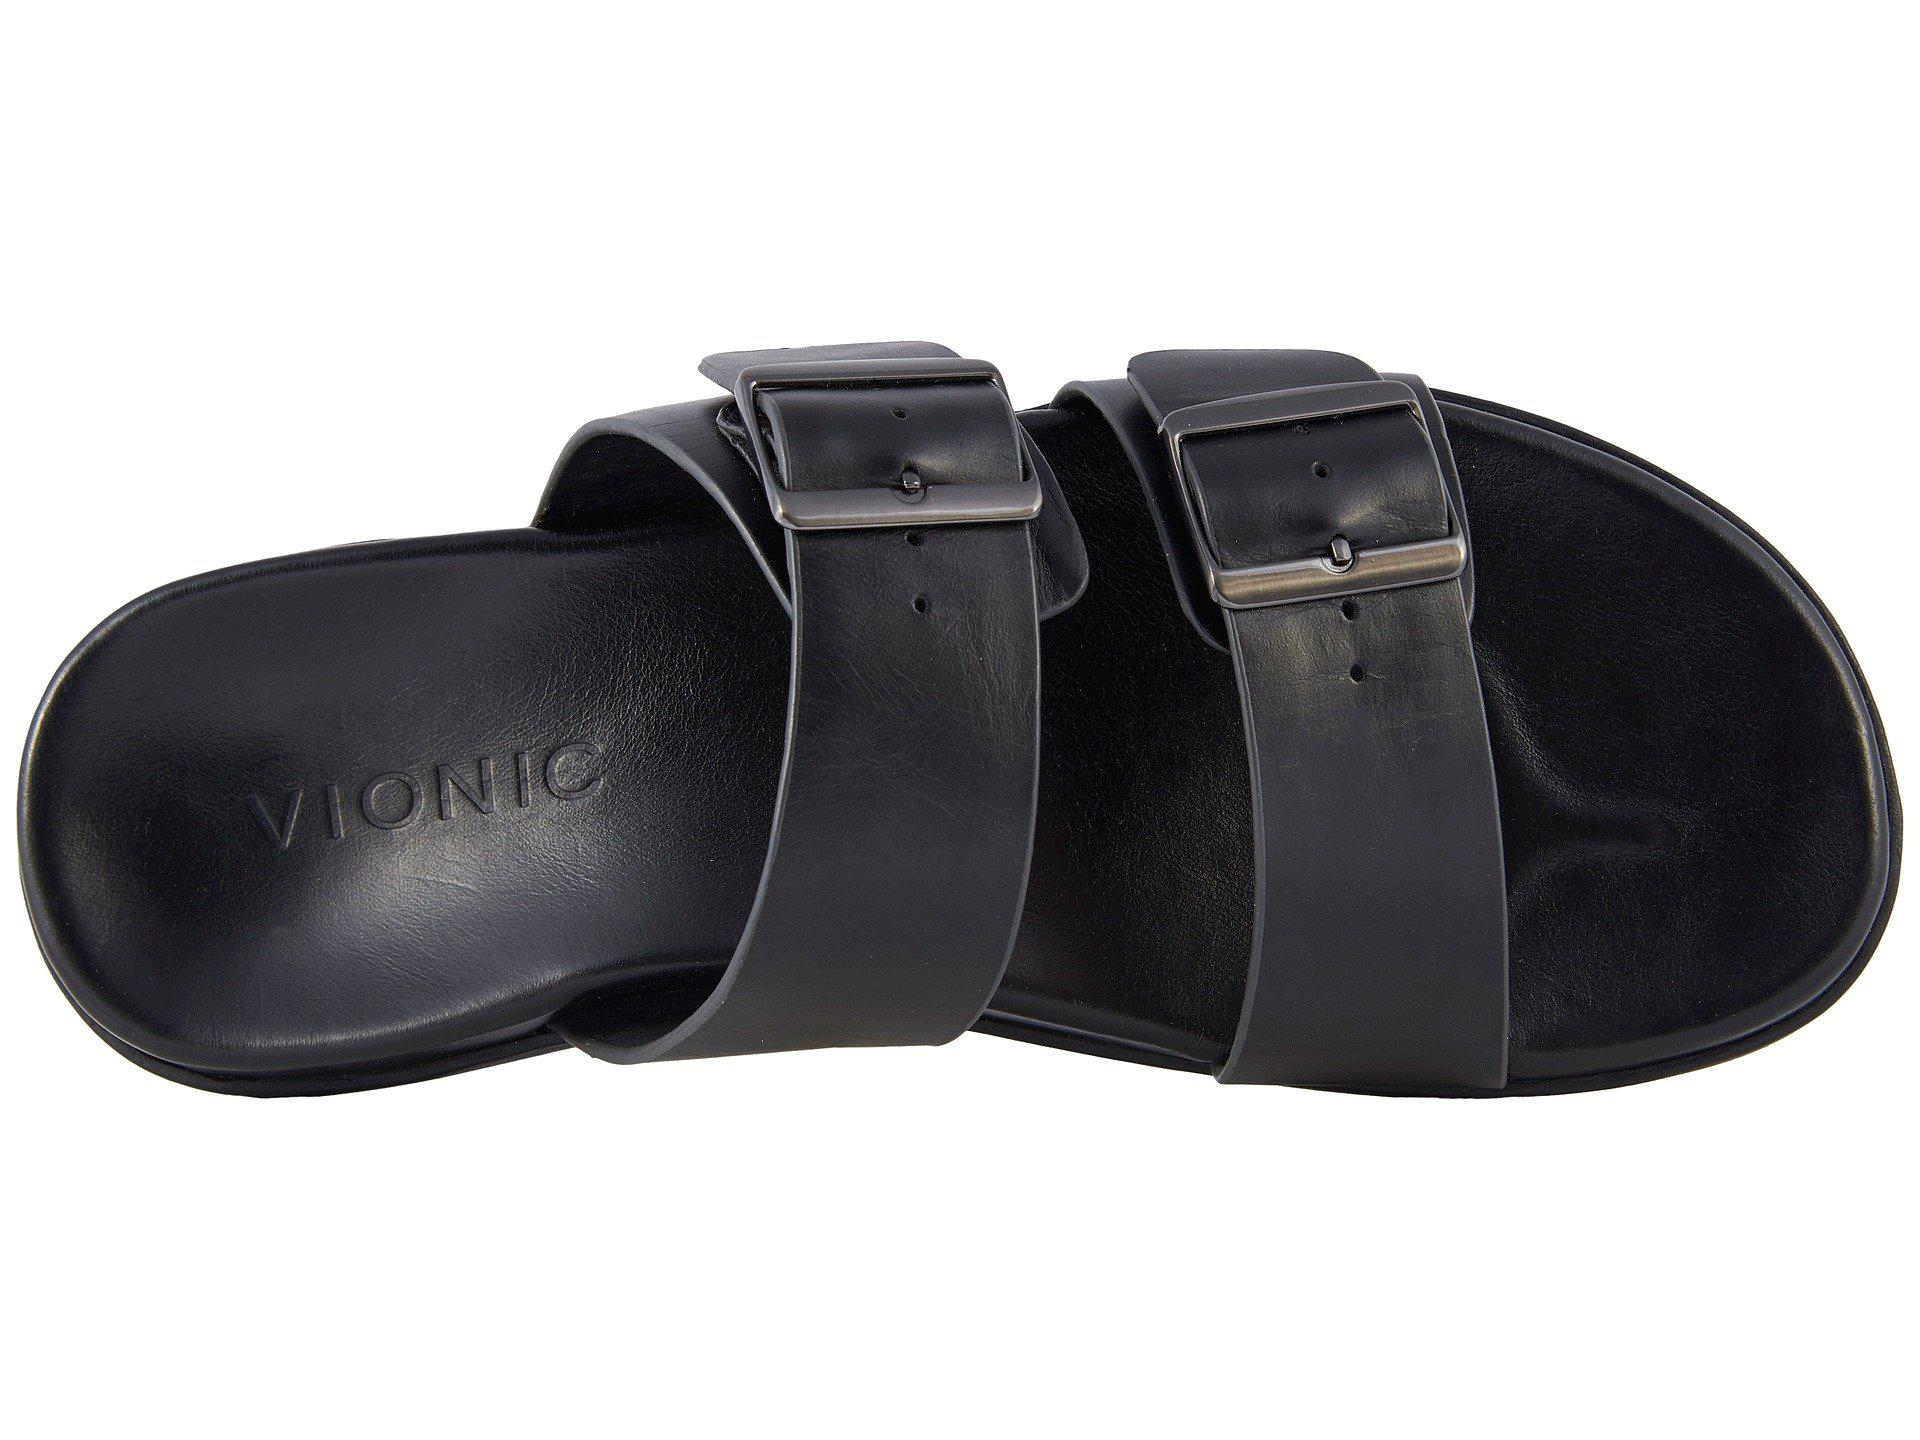 bf7b81032edf Vionic - Black Charlie (brown) Men s Sandals for Men - Lyst. View fullscreen